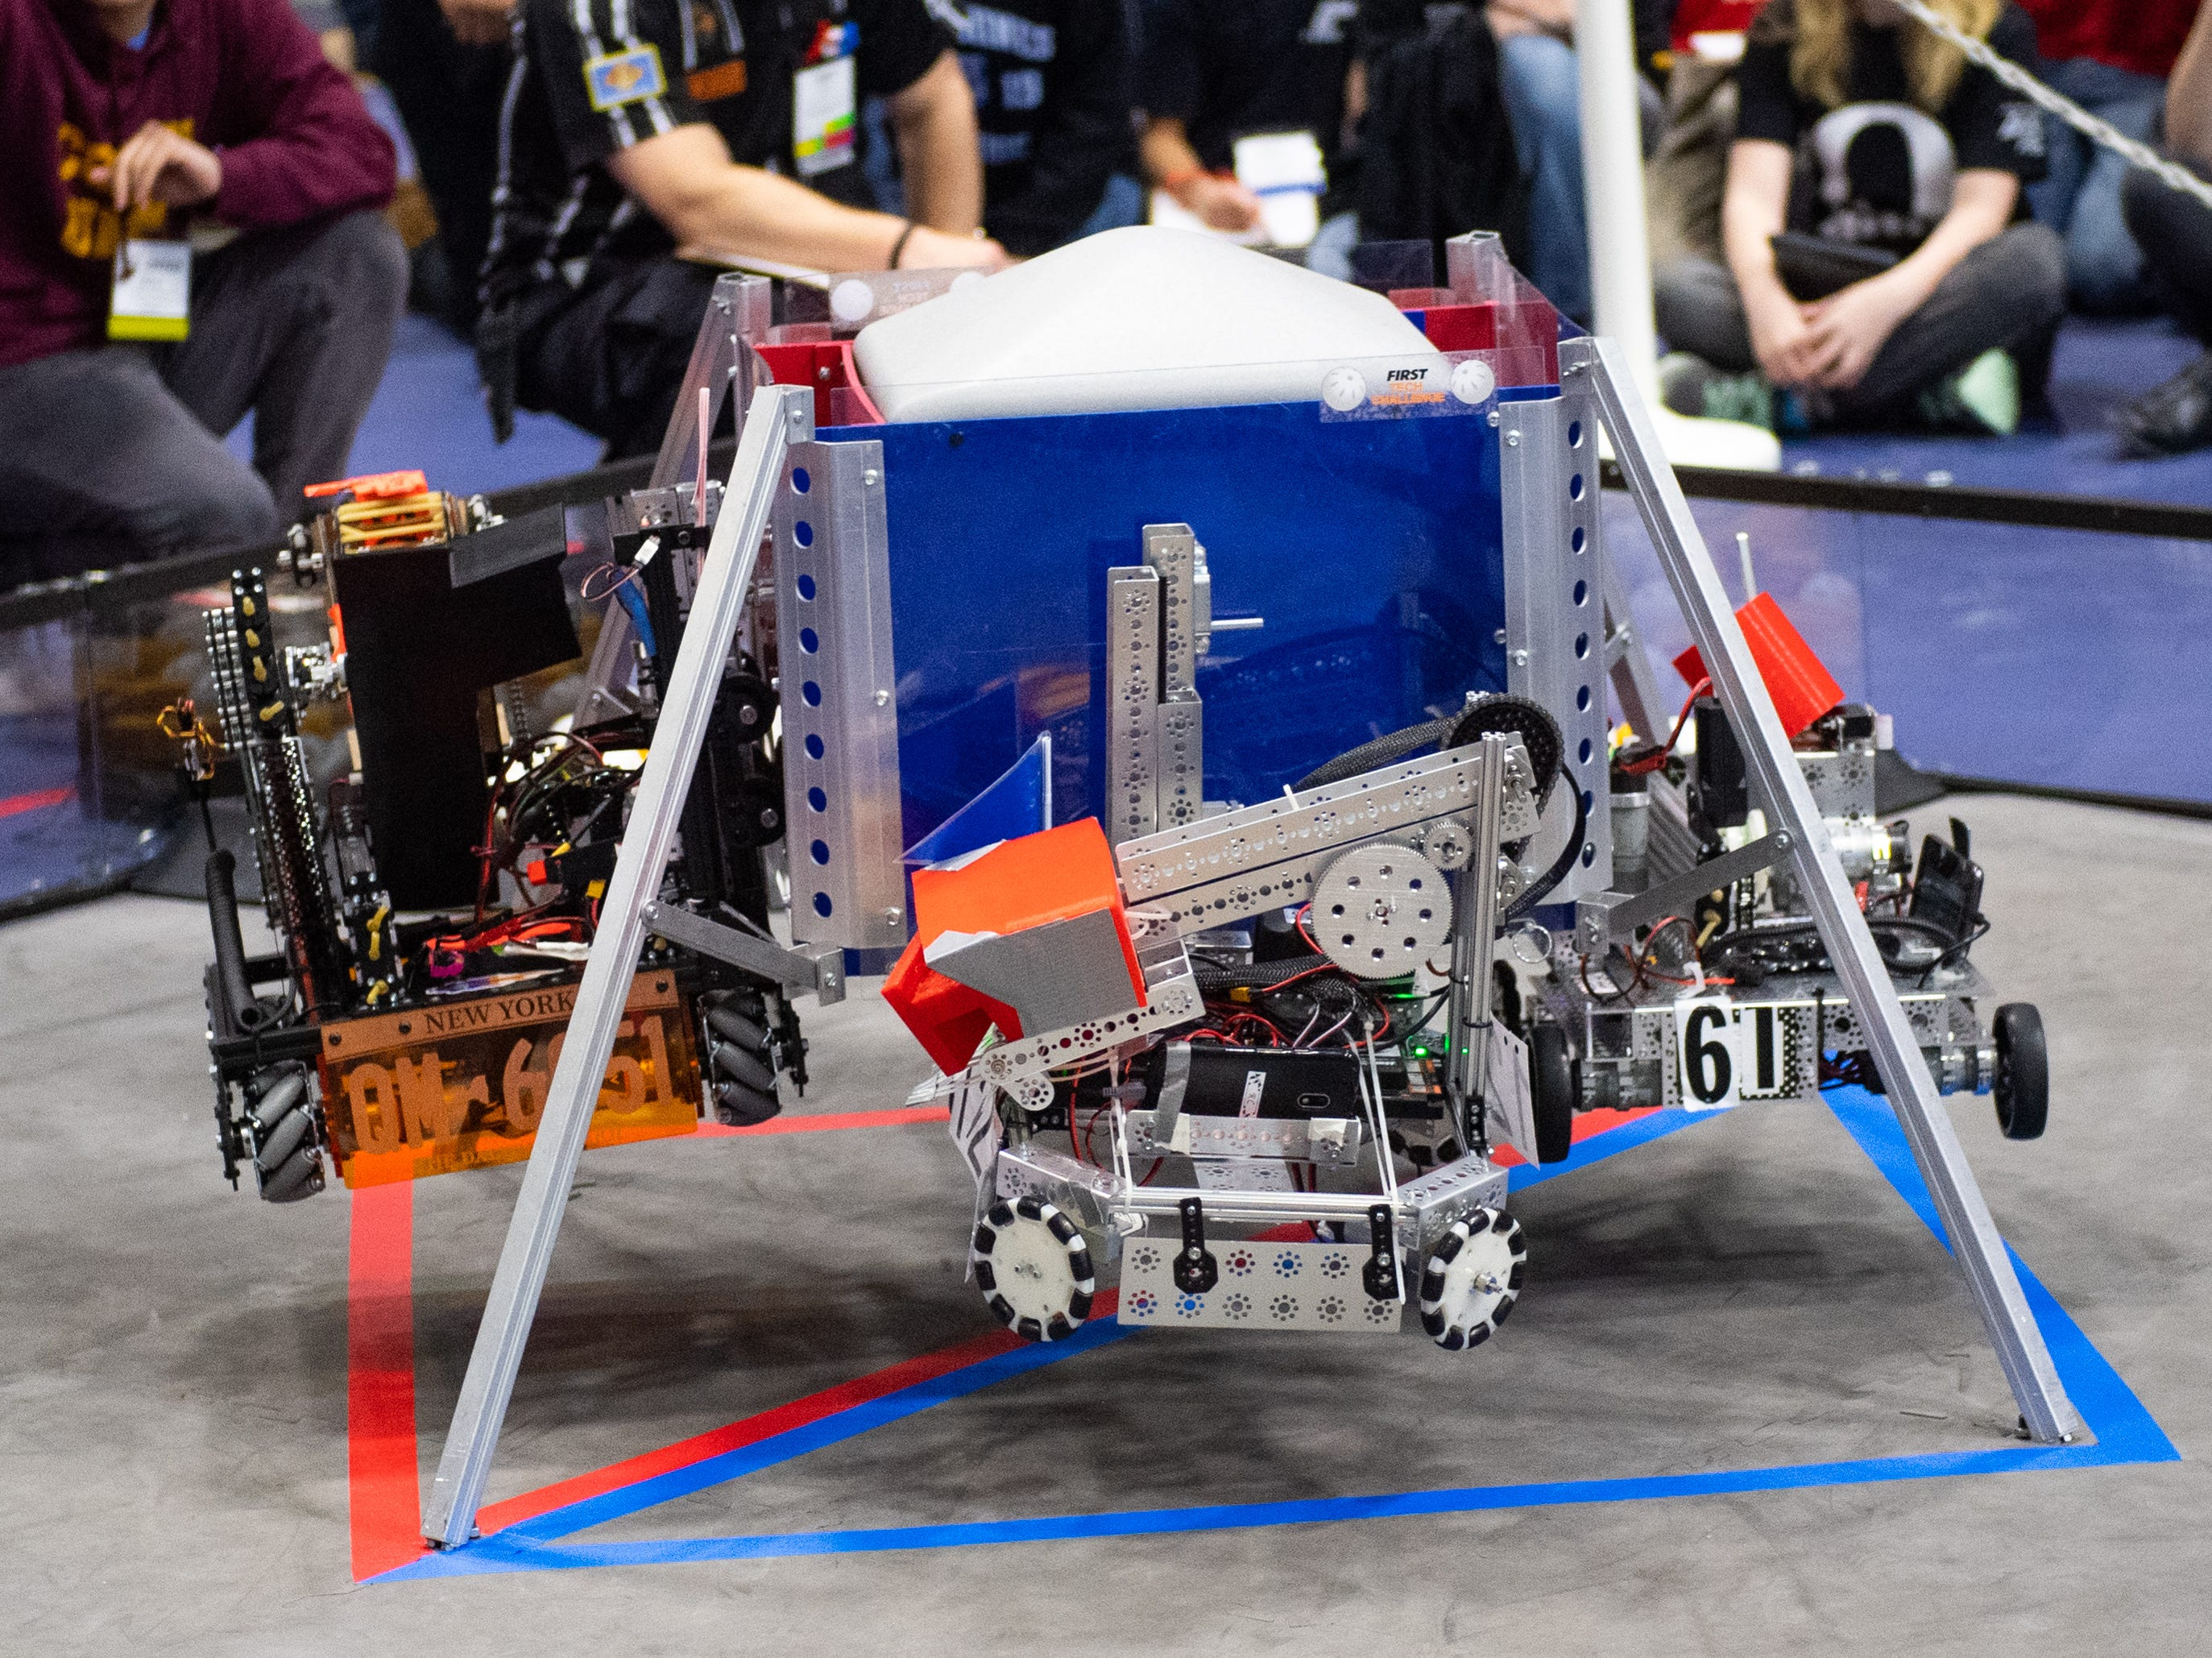 At the start of each match, all four robots are hoisted off of the ground during the First Tech Challenge robotics competition at Penn State York, February 2, 2019.